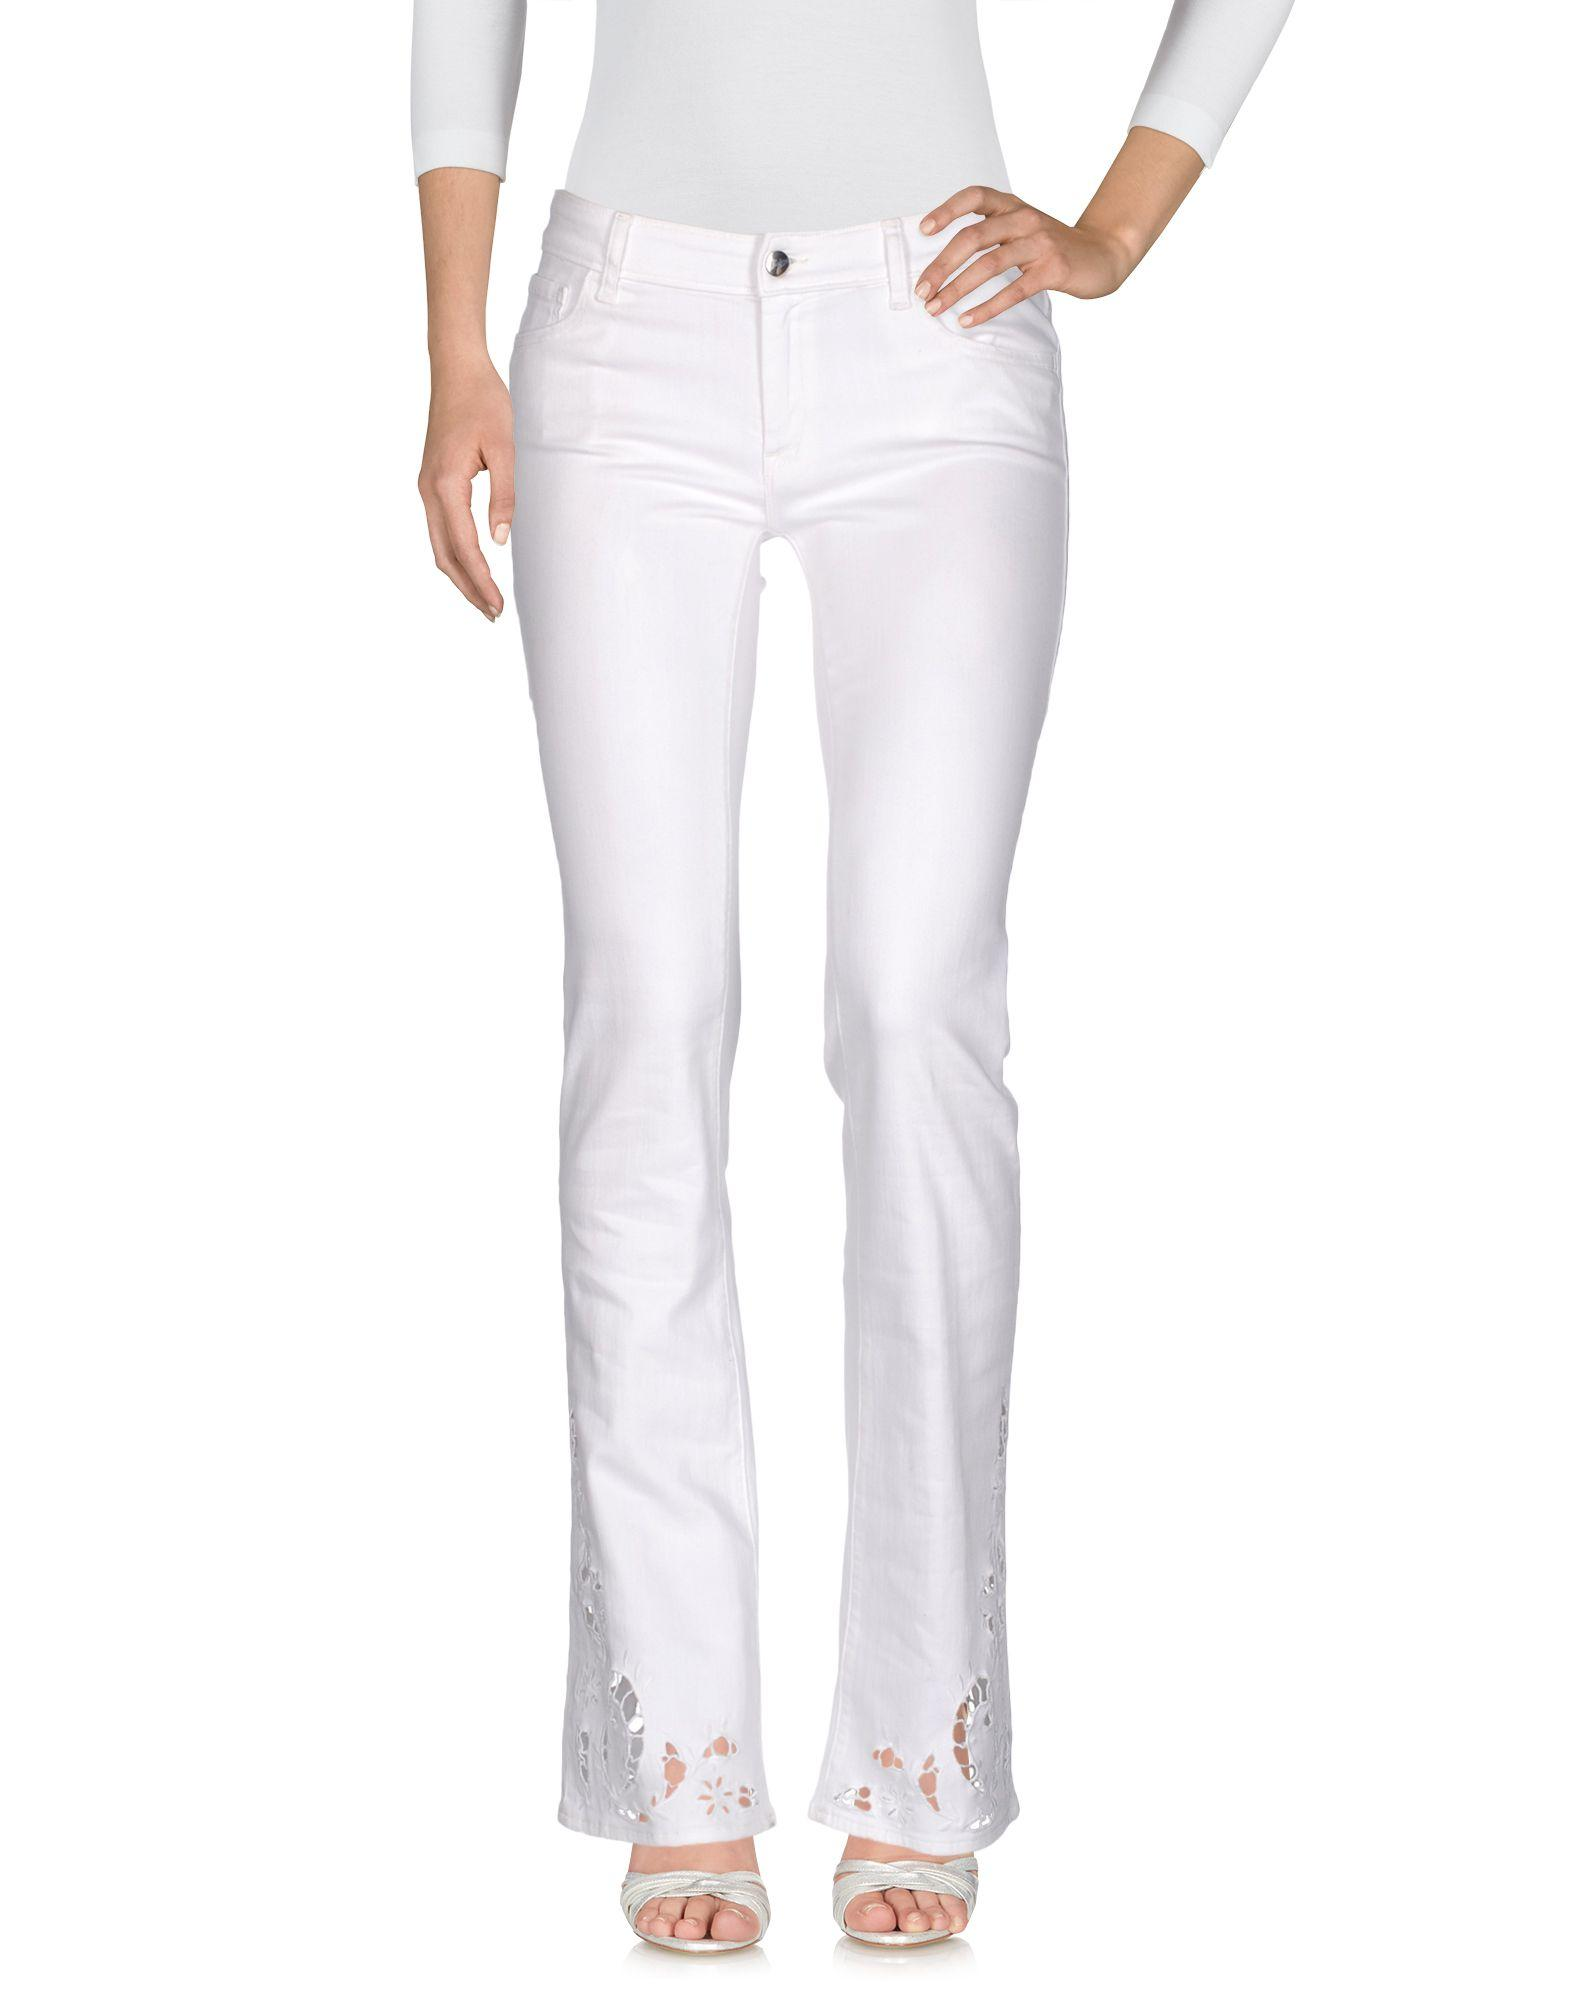 The Seafarer Jeans In White